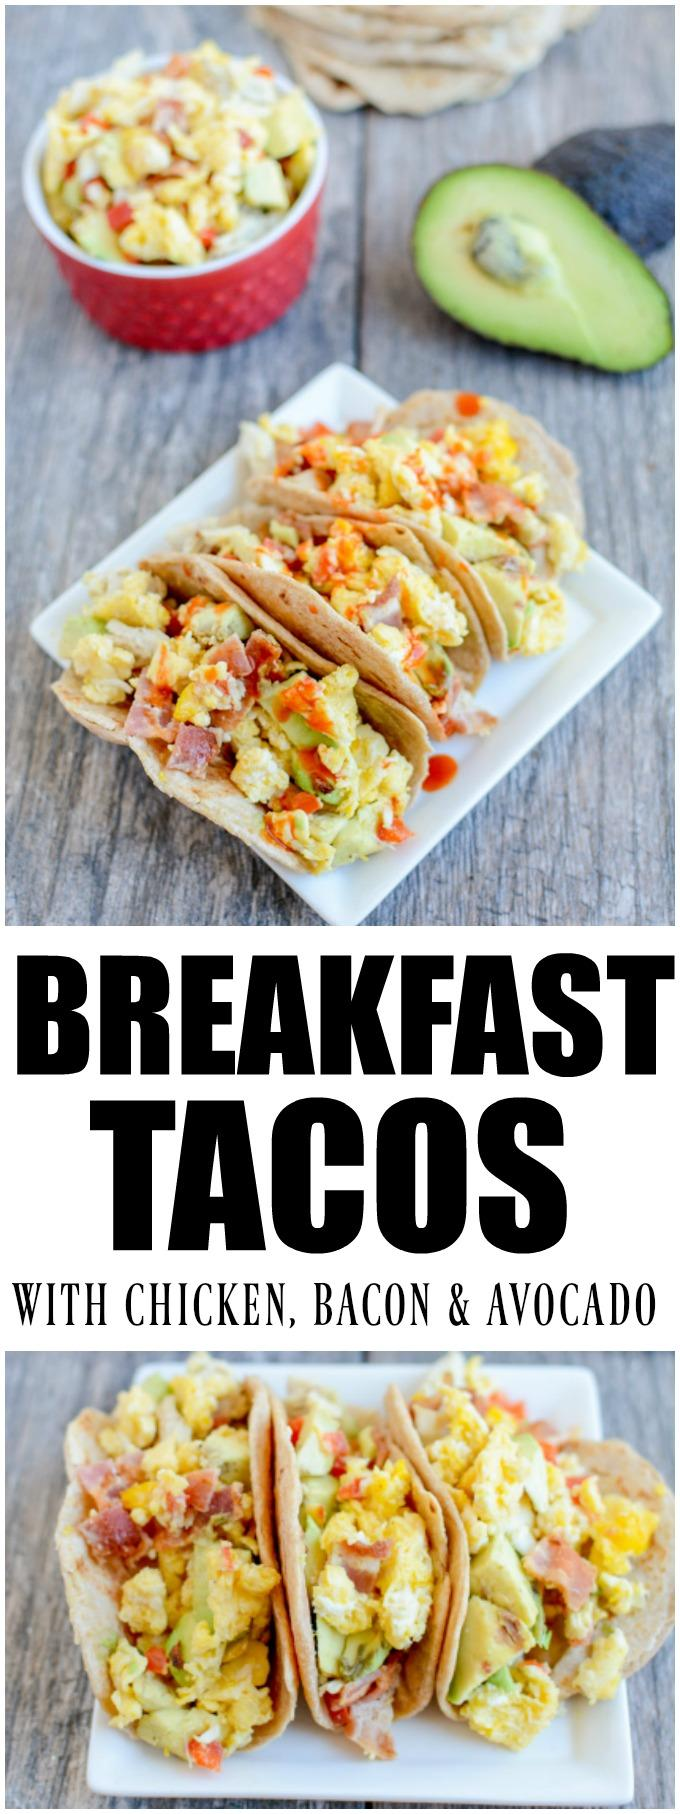 These Chicken Bacon Avocado Breakfast Tacos are an easy way to transform leftover chicken from dinner into a healthy new morning meal!